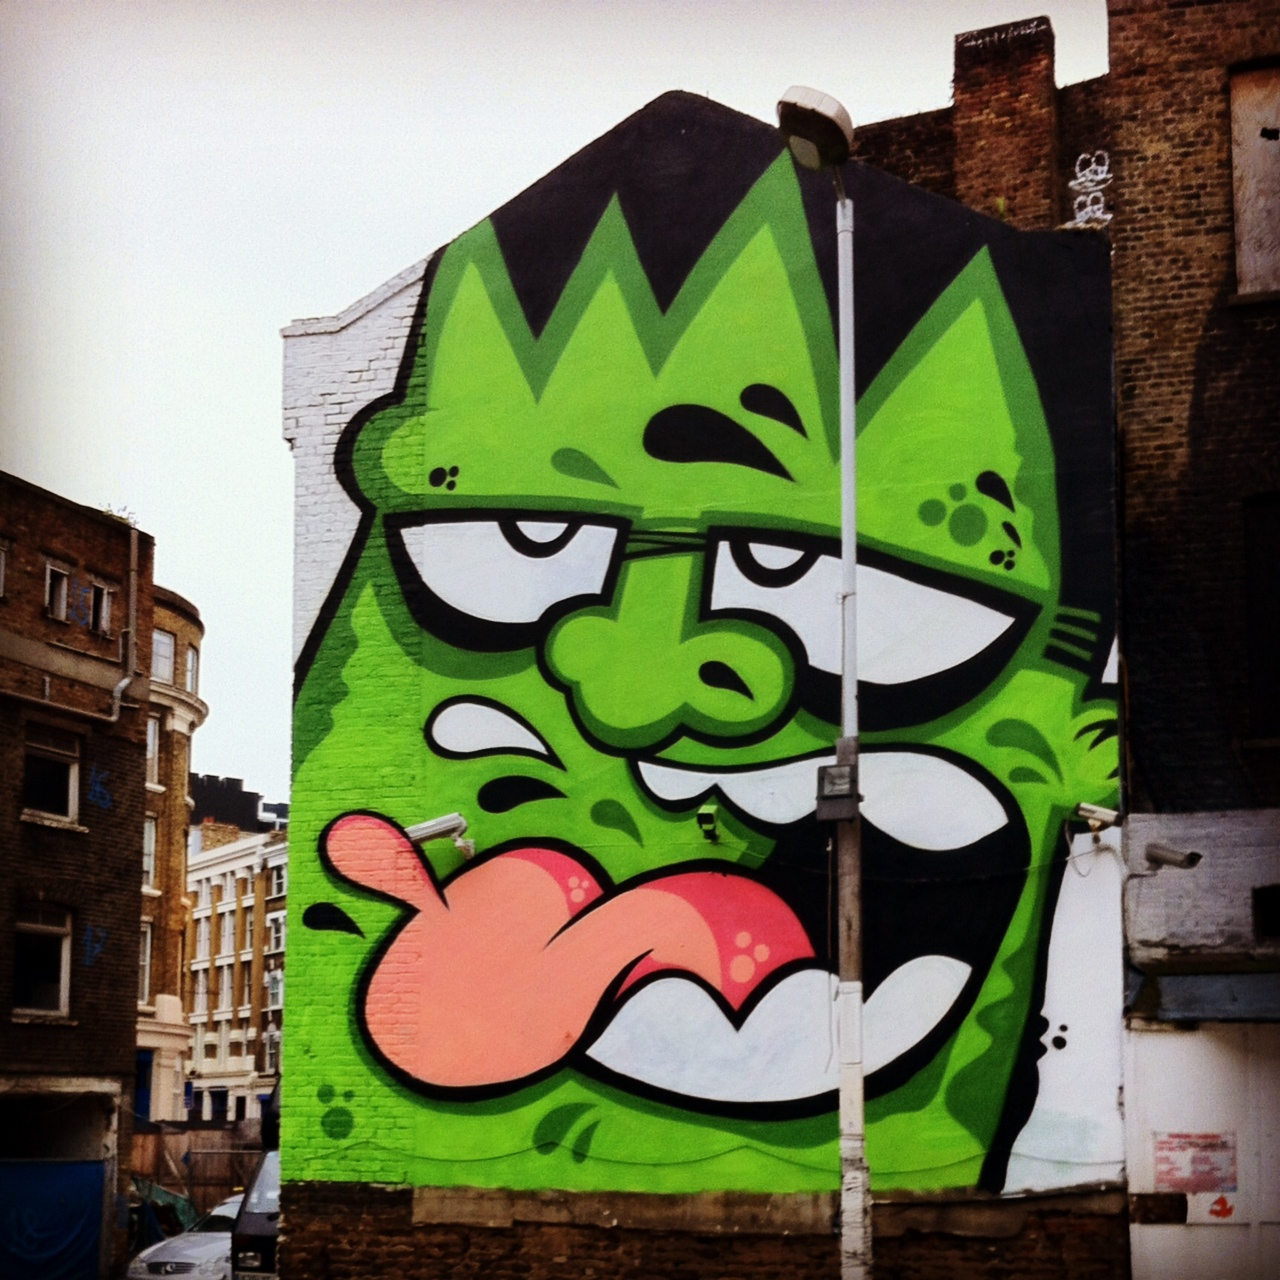 Frankenstein-like mural in Shoreditch, East London